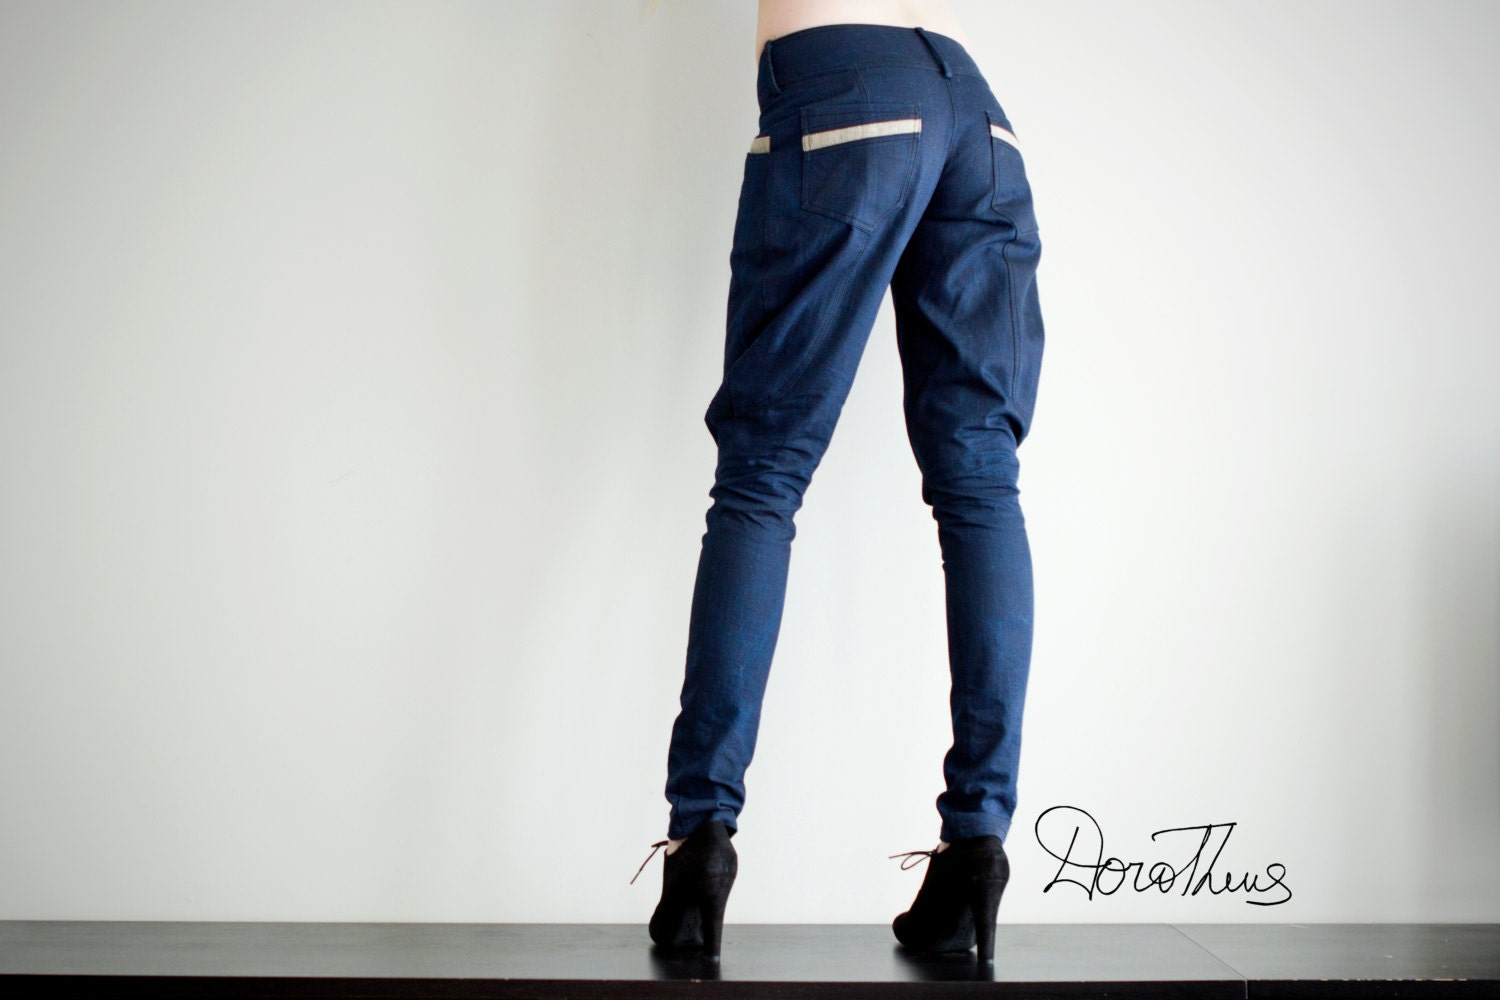 Denim galife skinny jeans / pants for women - DoroTheus